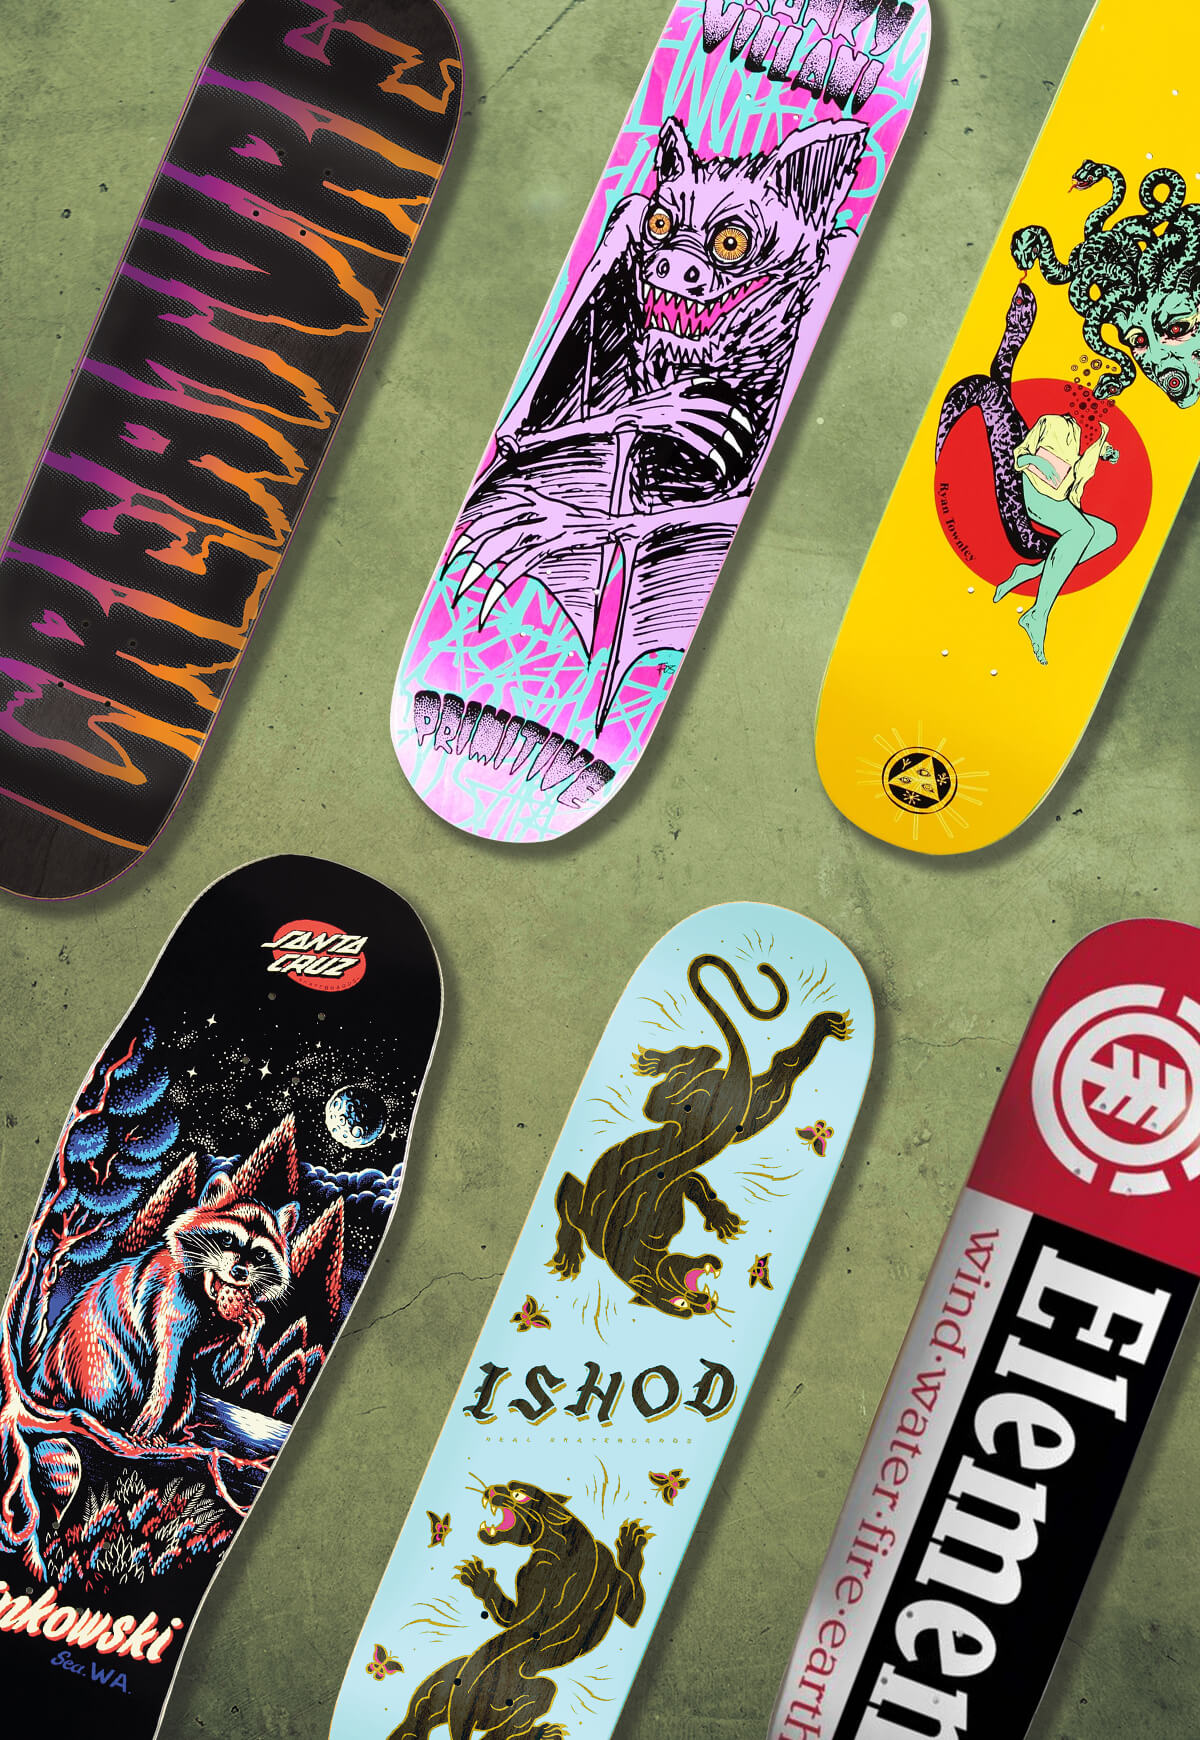 NEW ARRIVAL SKATEBOARD DECKS FROM THE BEST IN THE BUSINESS - SHOP SKATEBOARDS